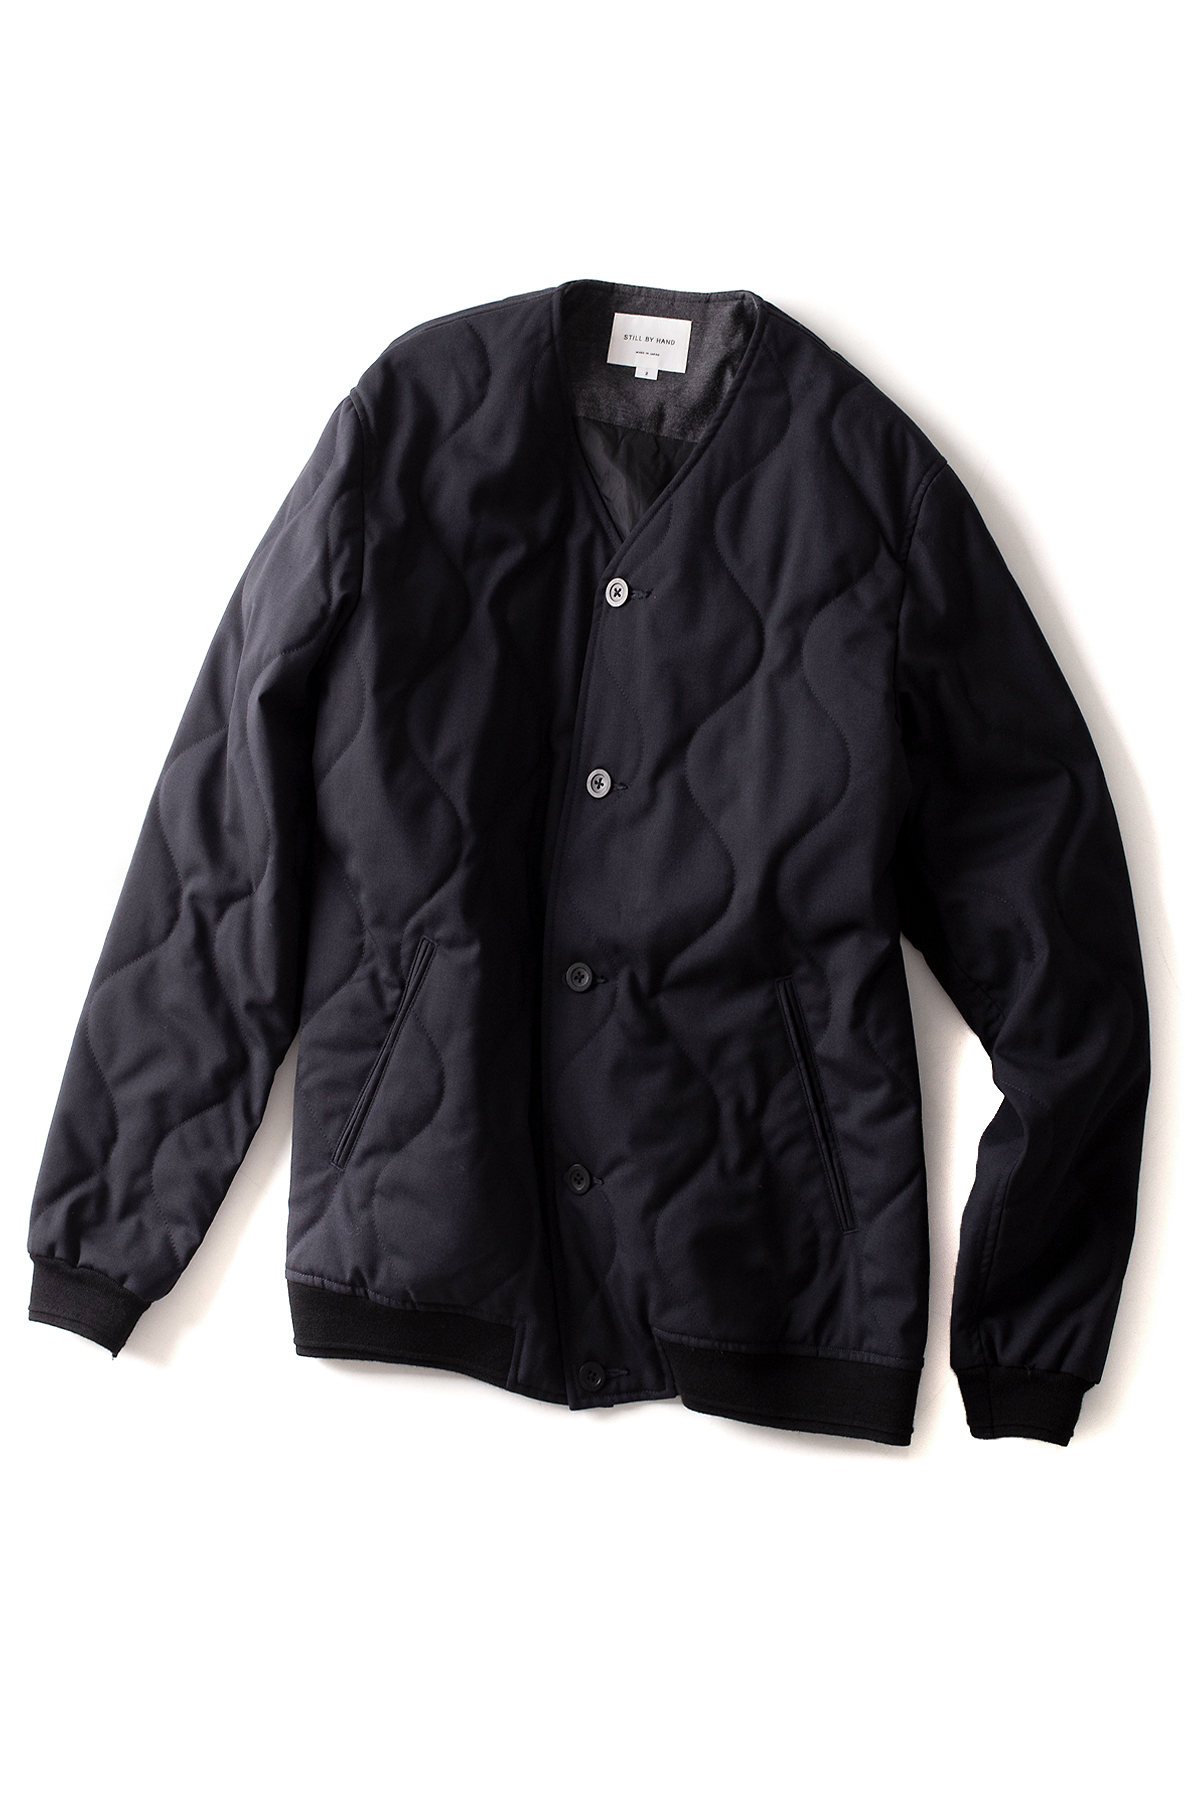 Still by Hand : Quilting Wool Blouson (Navy)